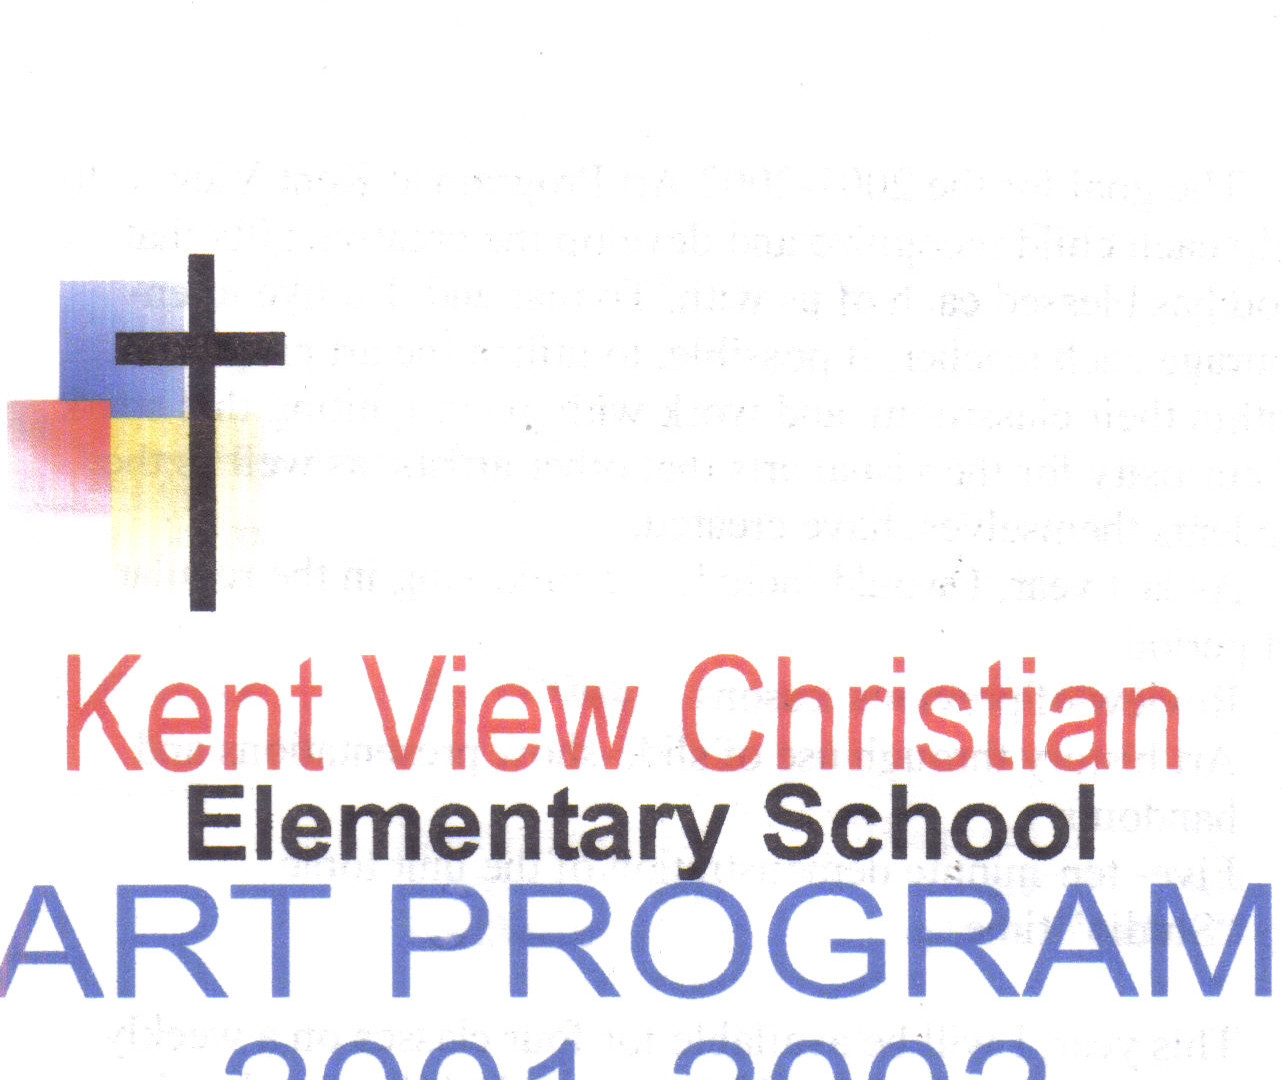 This was a new program for the school which I designed the curriculum, collaborated with the staff, and taught twice weekly. This was a volunteer position.